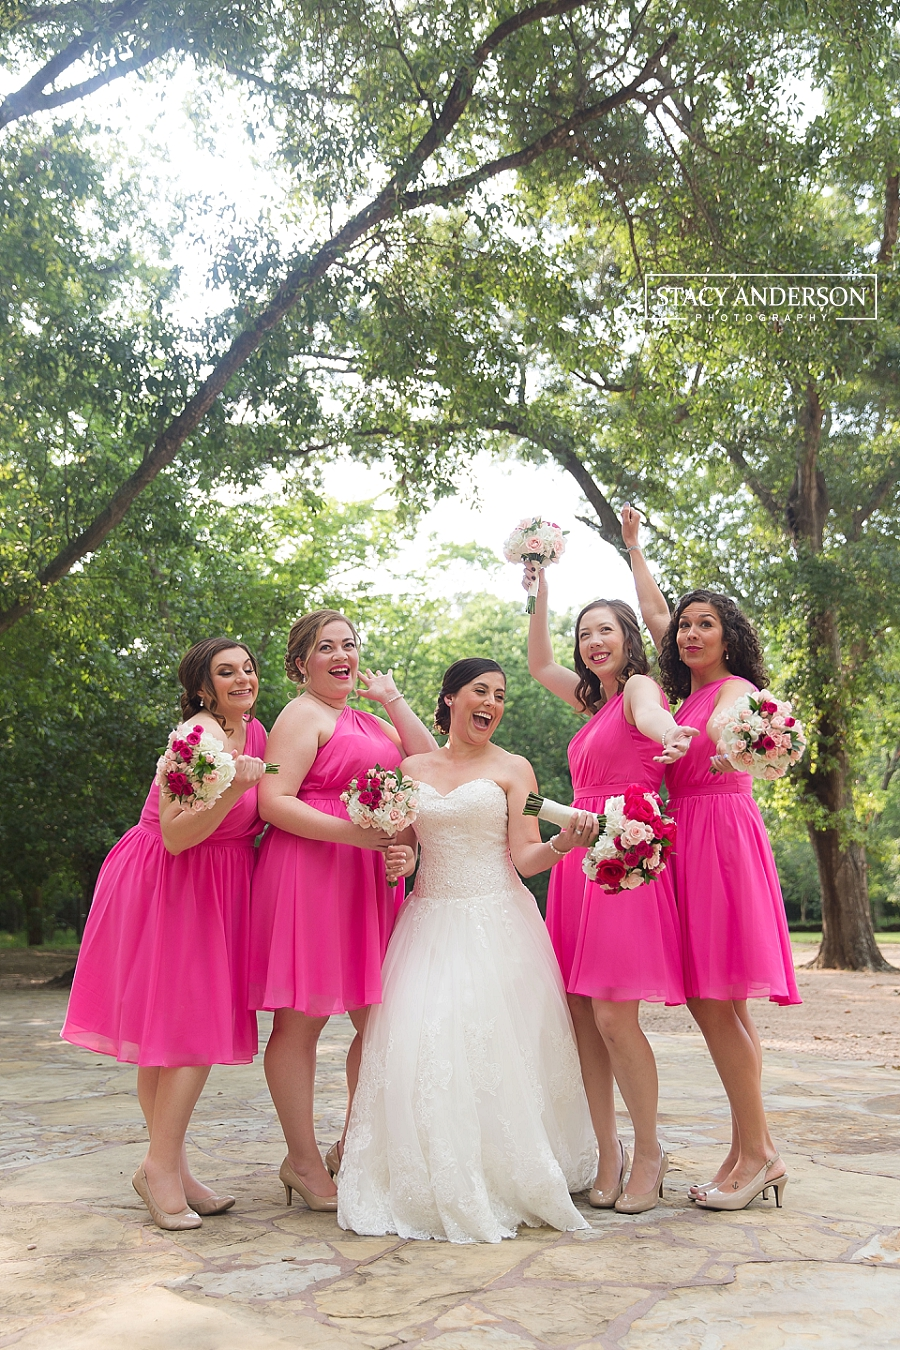 Stacy Anderson Photography Agave Road Katy TX Photographer_0127